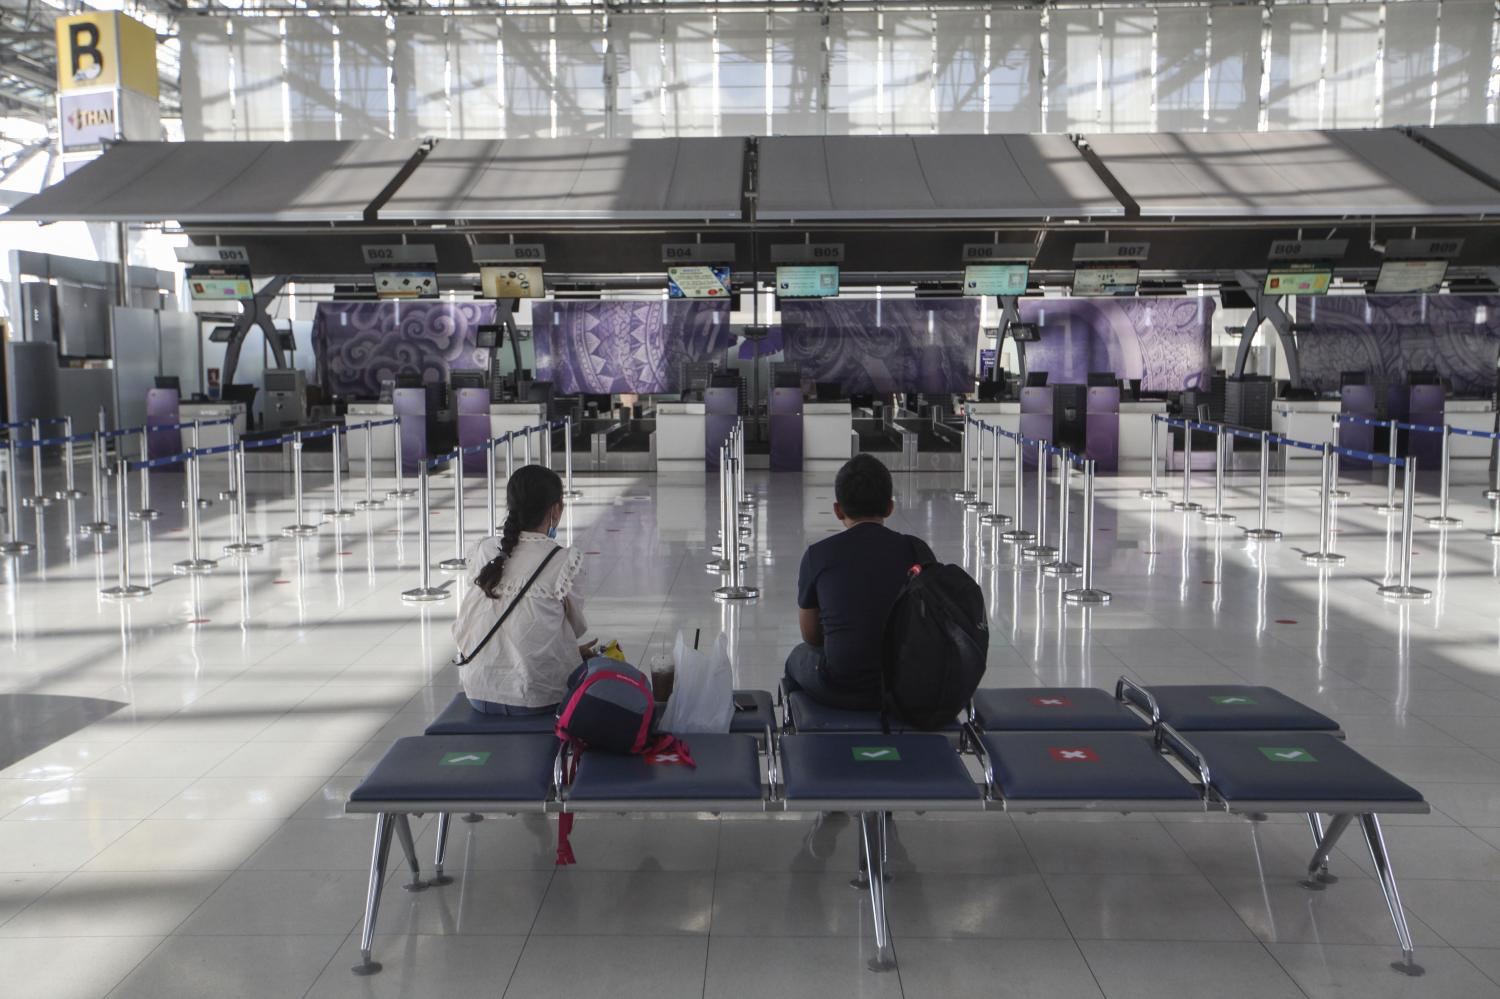 Suvarnabhumi airport has seen little traffic amid travel restrictions. The FPO predicts 6.8 million foreign tourist arrivals this year, down from 39.8 million in 2019.(photp by Arnun Chonmahatrakool)